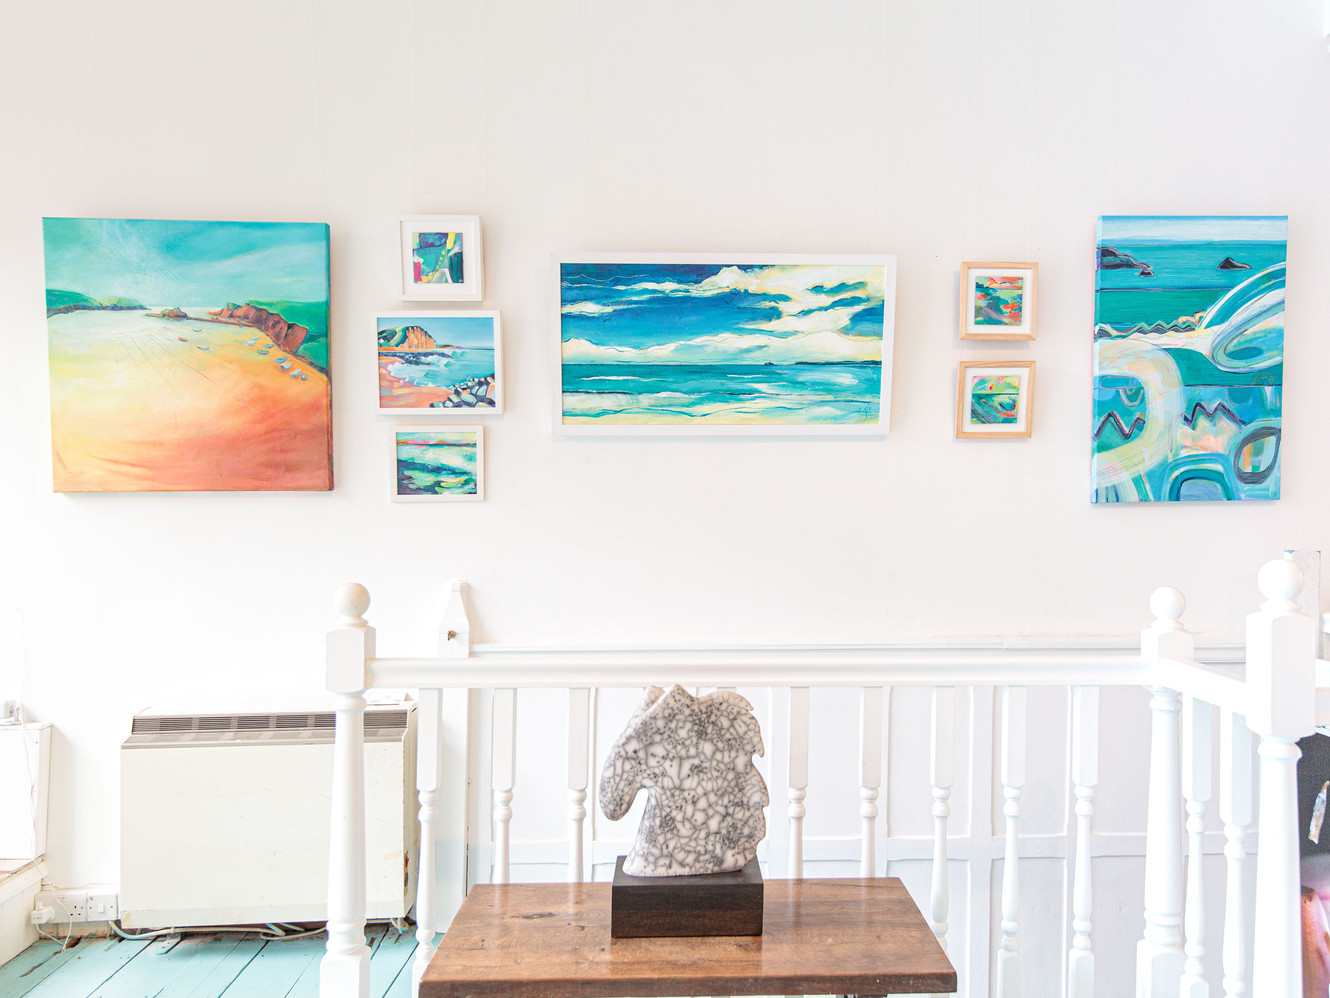 Meet Artist Claire Harmer at the SSC Virtual Launch